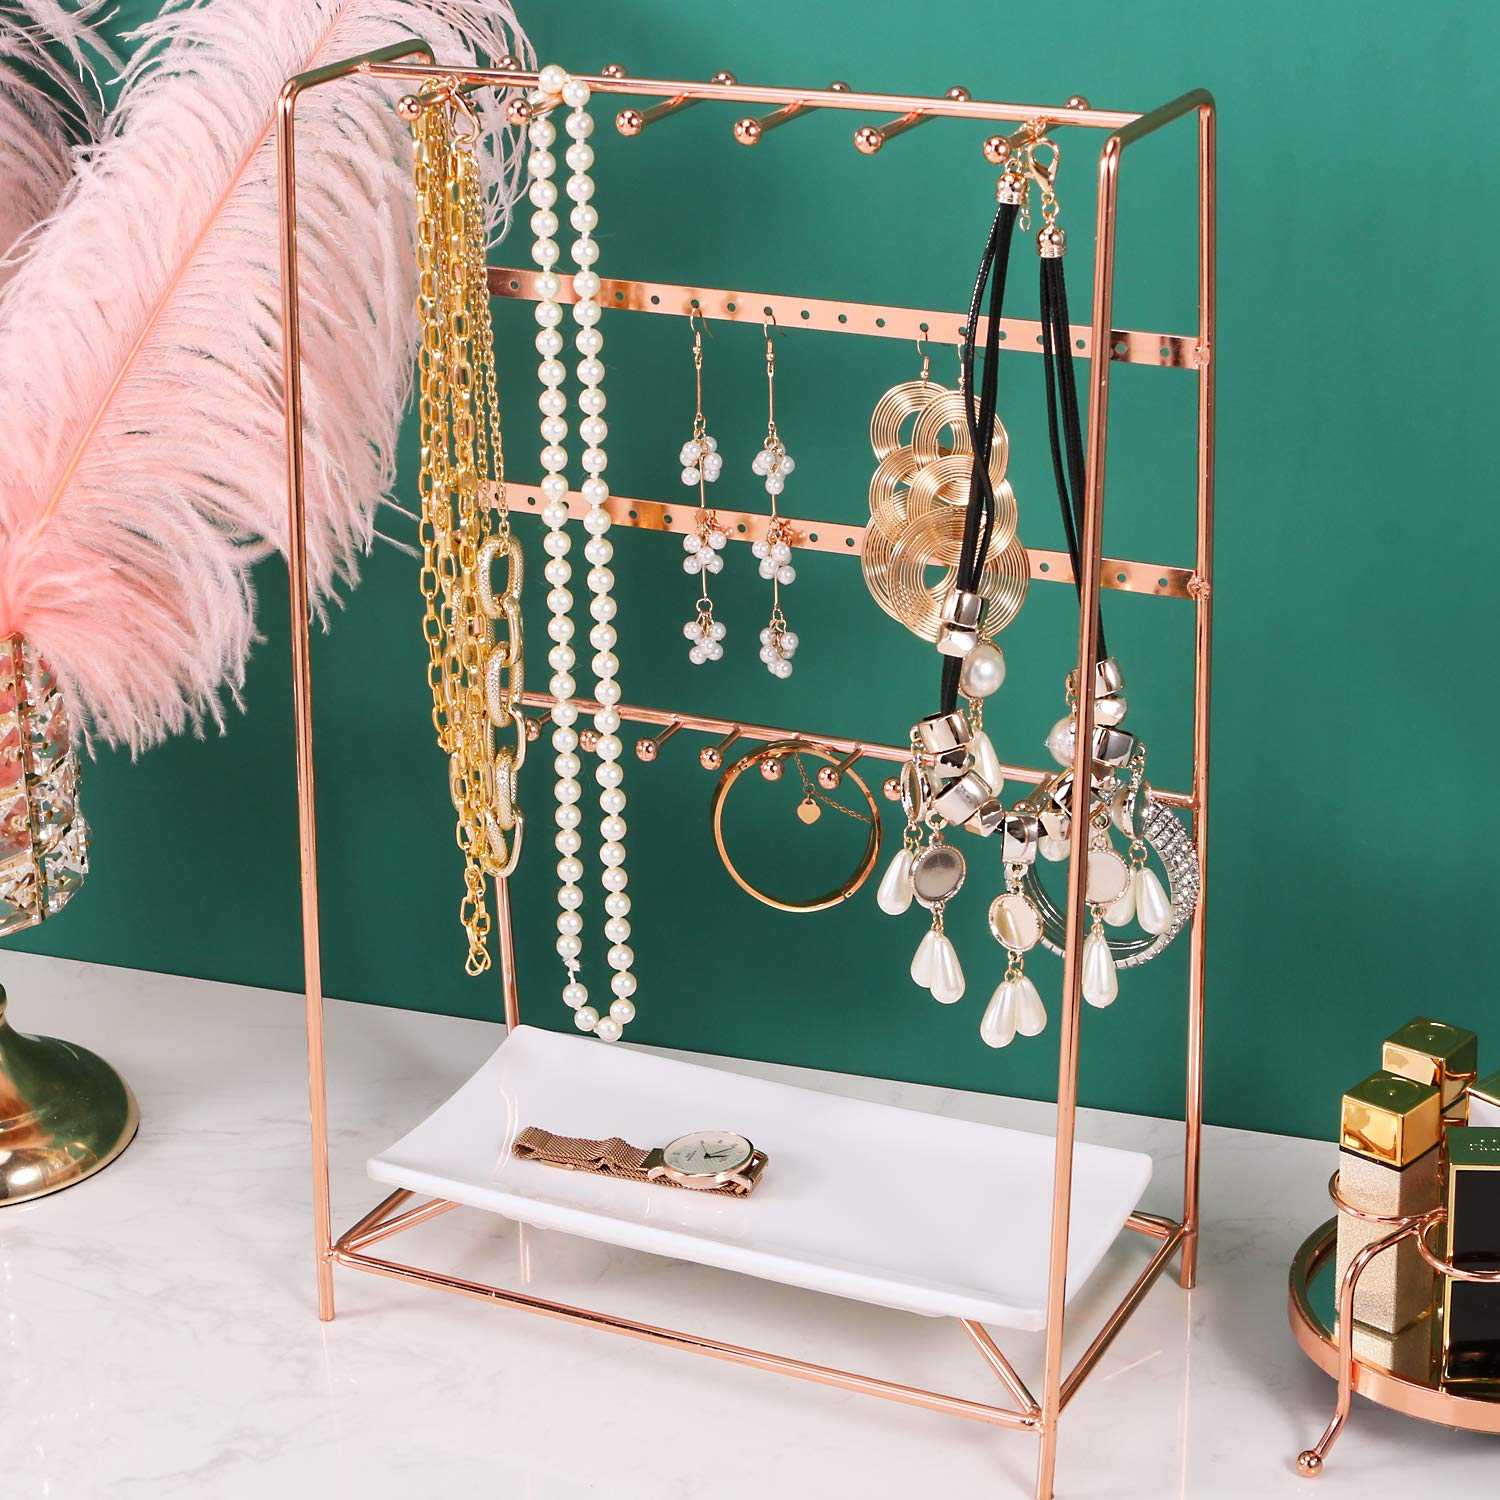 Amazon Com Simmer Stone Rose Gold Jewelry Stand 4 Tier Jewelry Organizer Holder Decorative Jewelry Storage Hanger Display With Tray For Rings Bracelets Necklaces Earrings Home Kitchen